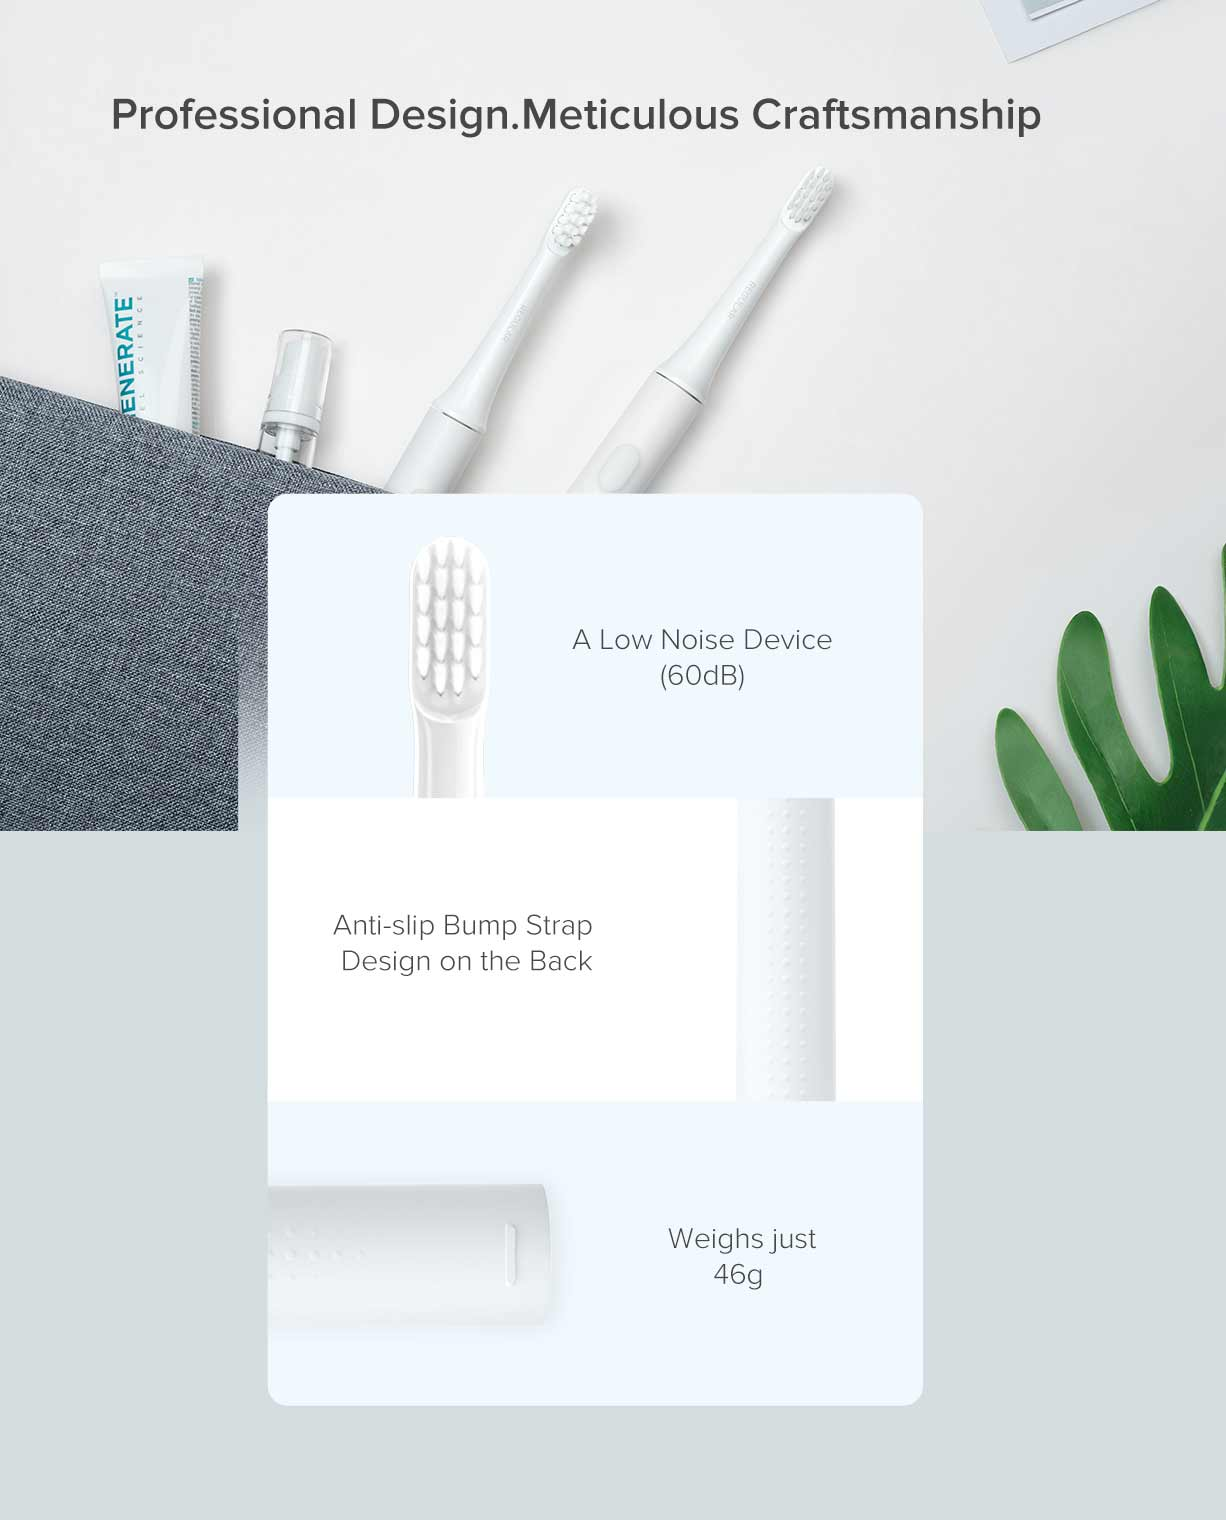 mi-electric-toothbrush-T100-proffesional-design